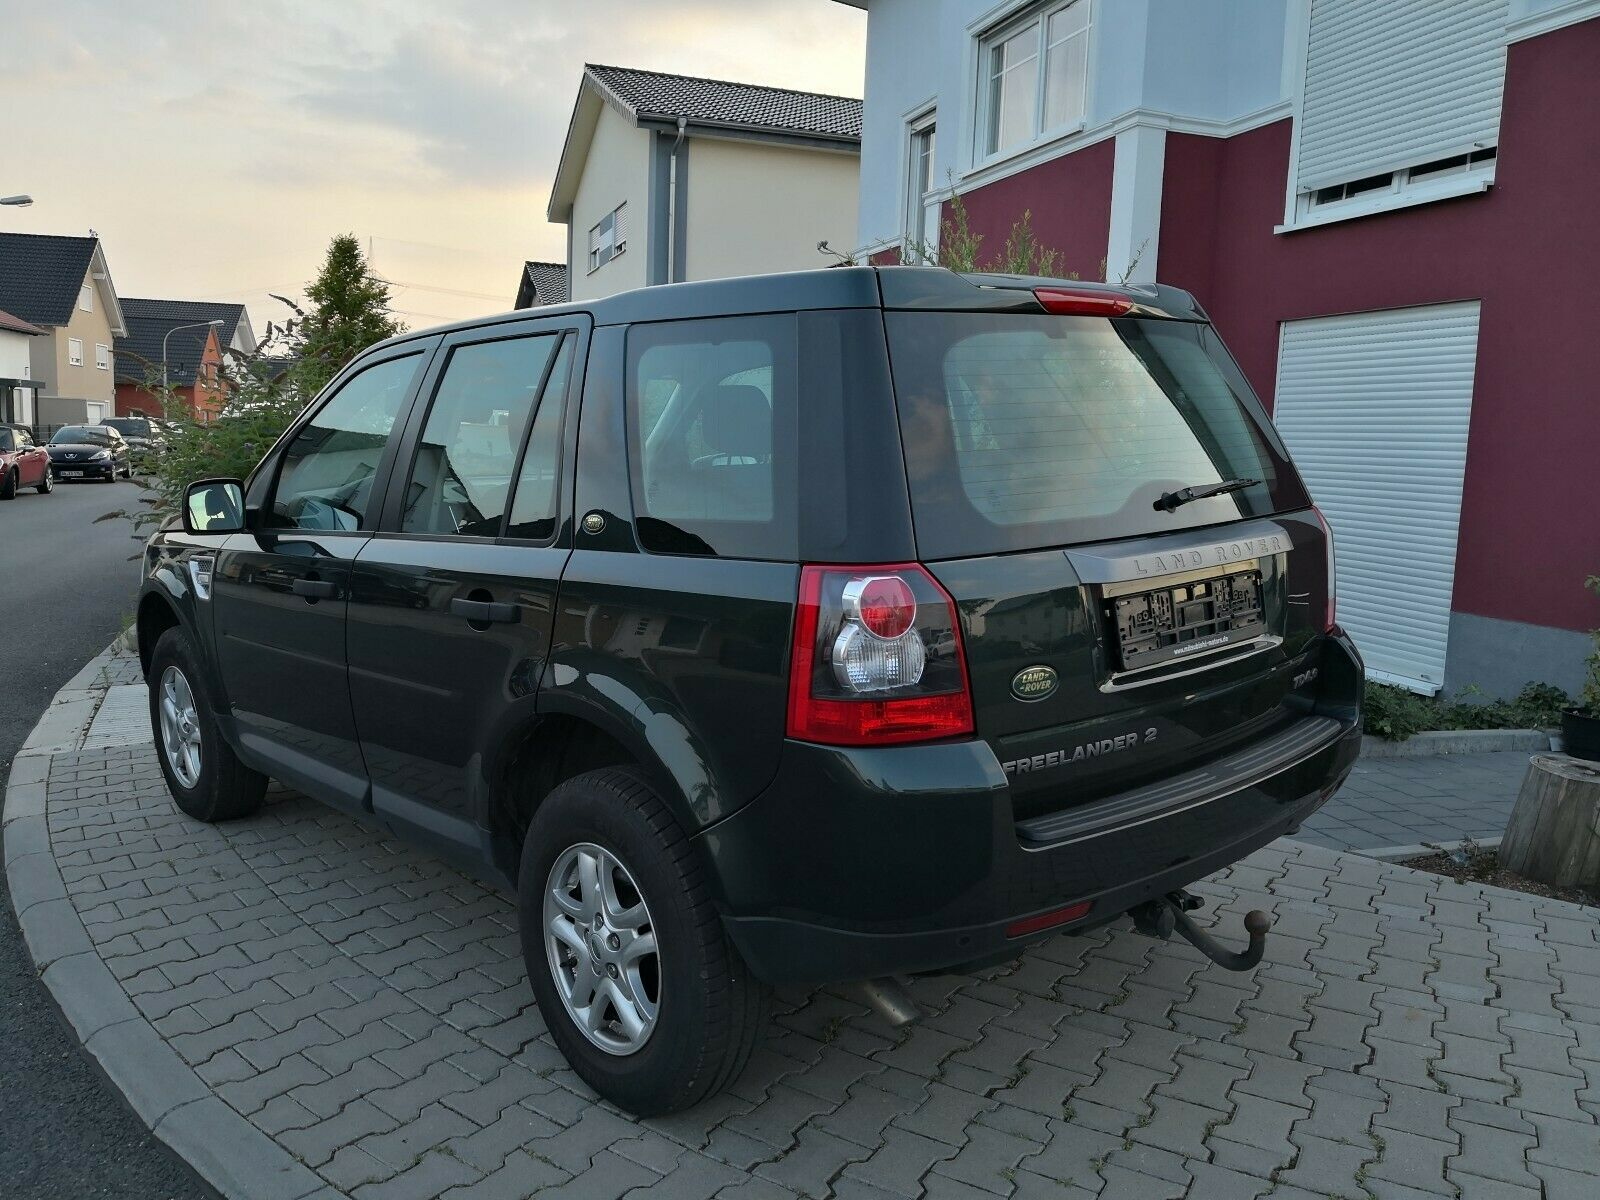 LAND ROVER Freelander XE Limited Edition AHK